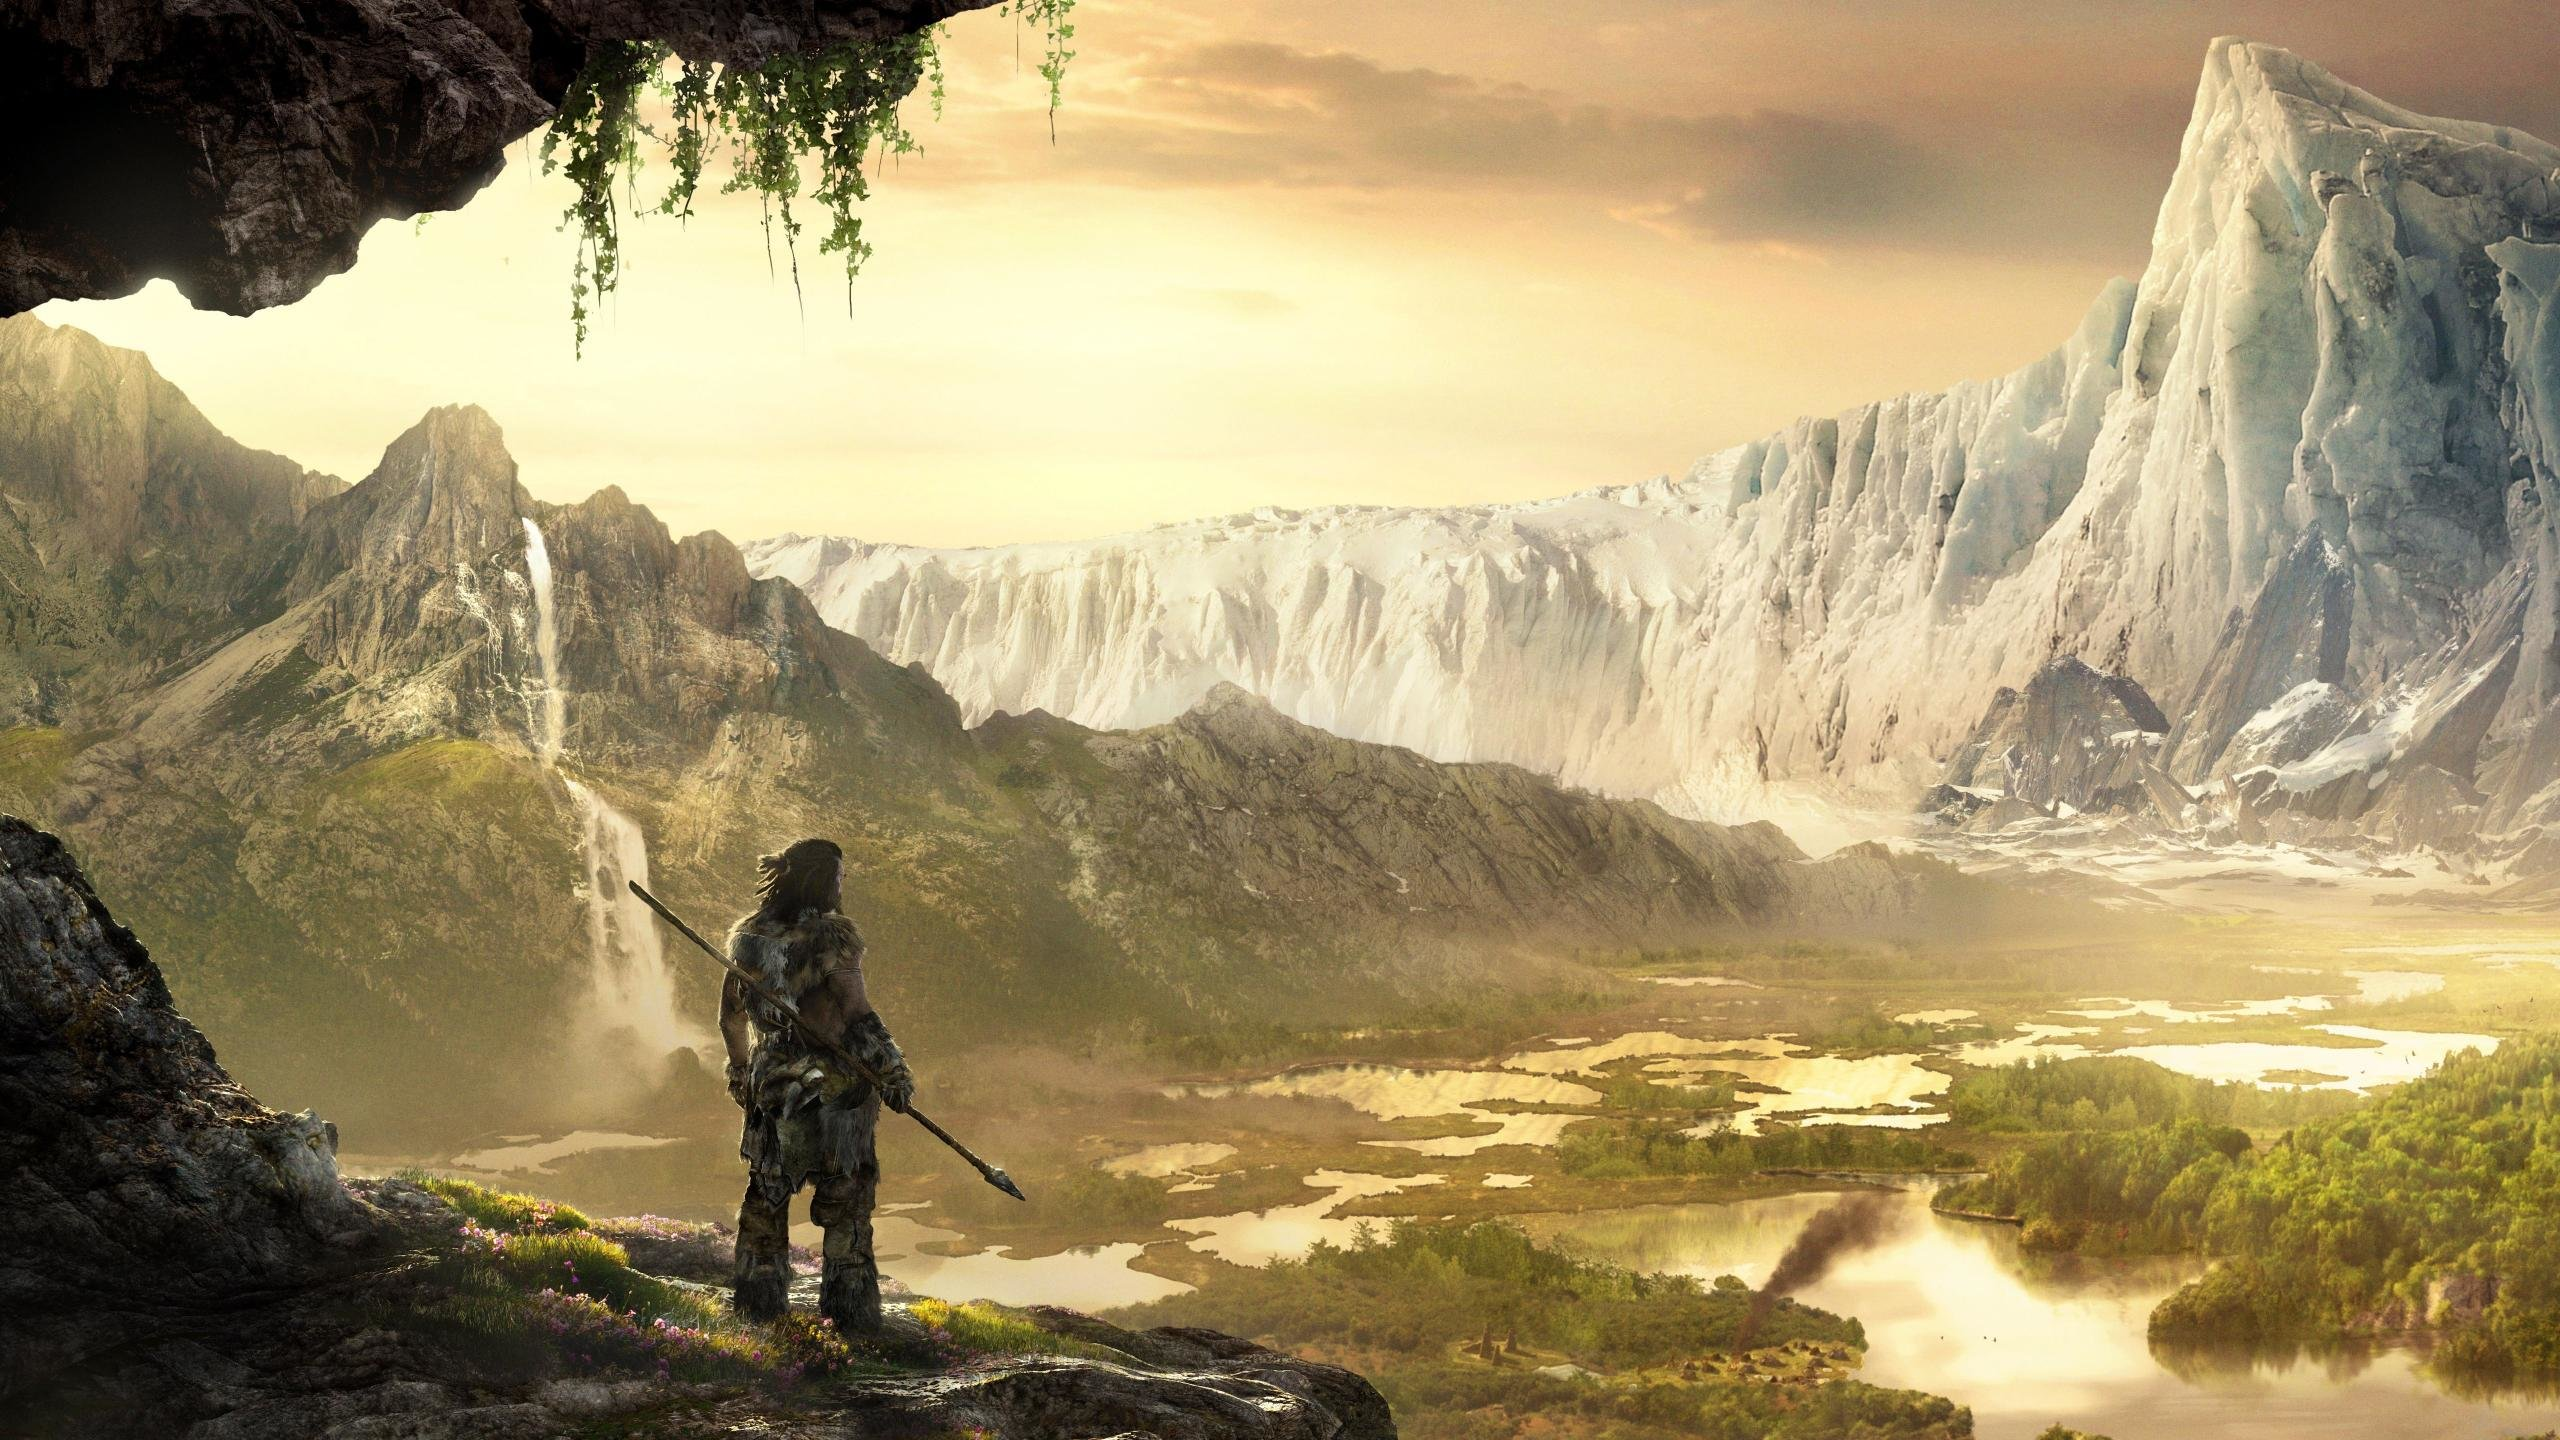 Far Cry Wallpapers 2560x1440 Desktop Backgrounds